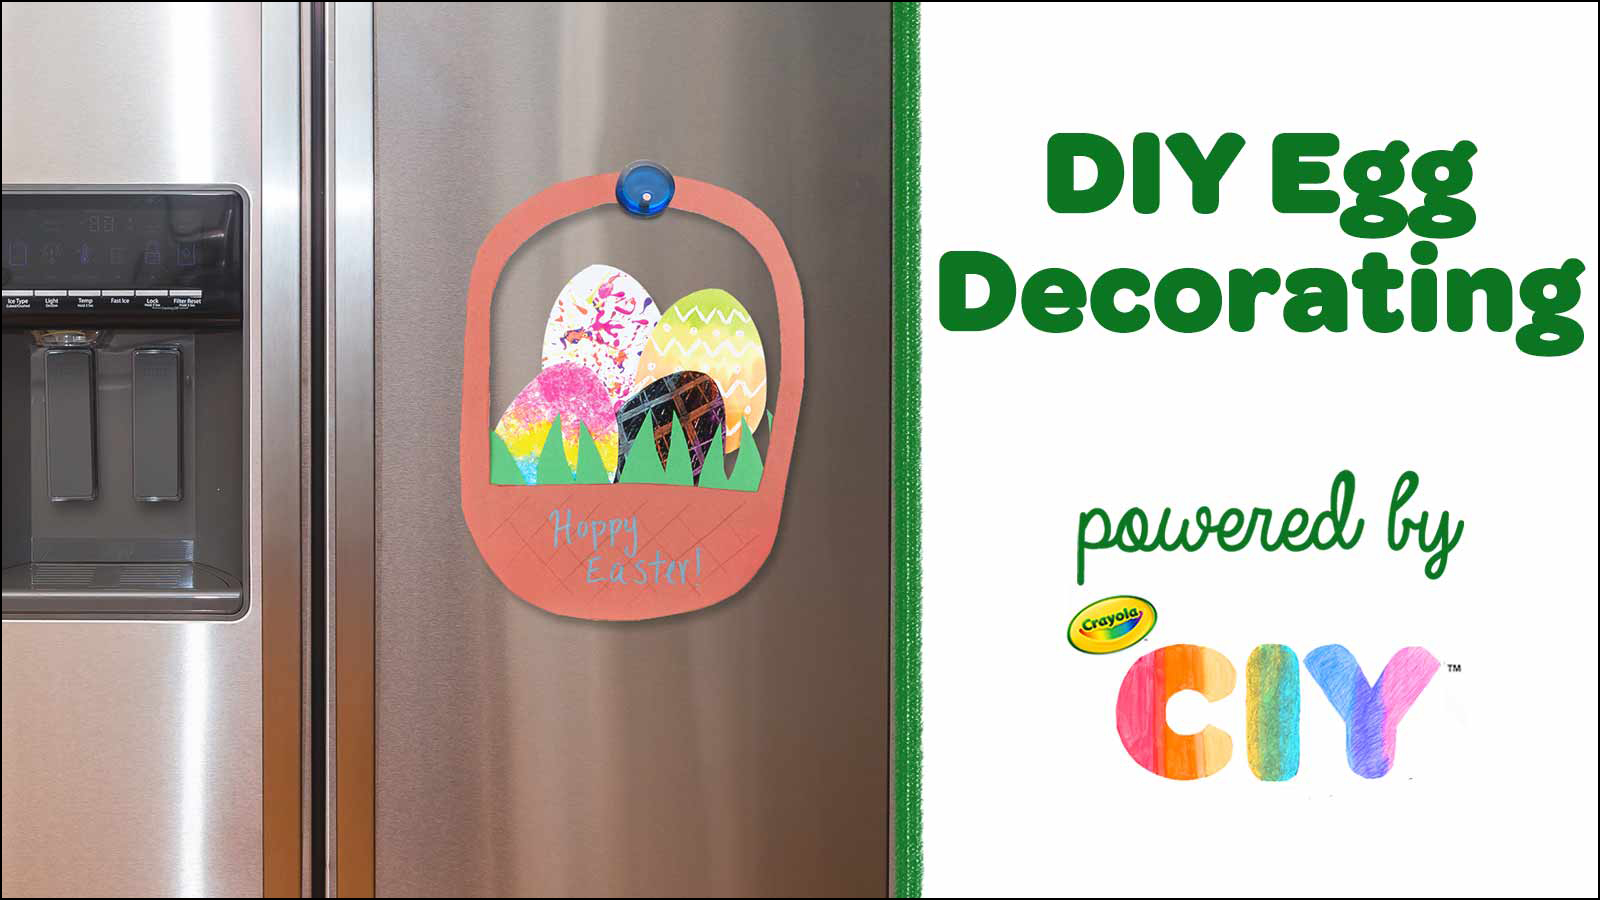 DIY Egg Decorating CIY Video Poster Frame